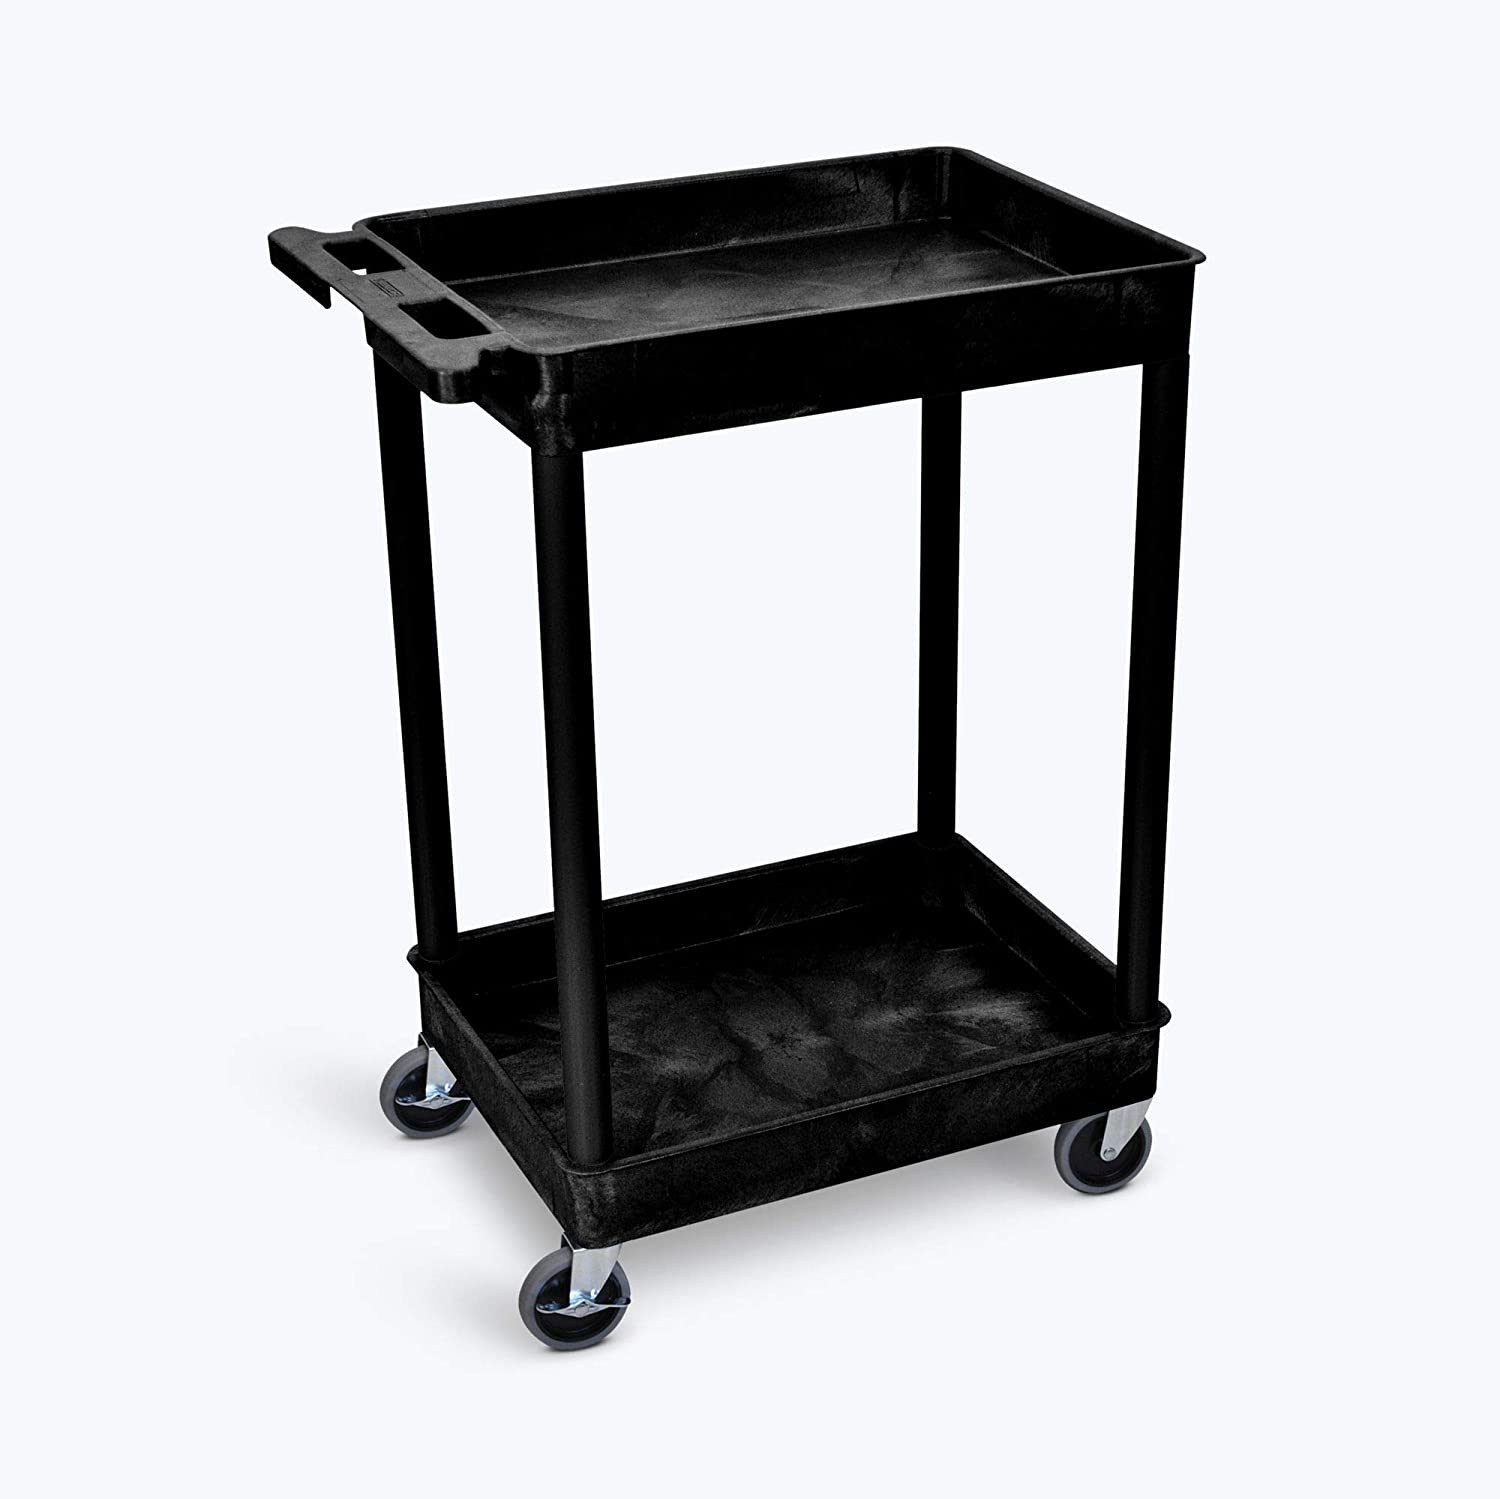 """B001LMSE6S Offex Multipurpose Rolling Storage Tub Utility Cart with Two Shelves, 4"""" Heavy Duty Casters - Black 71omE0nwx7L.SL1500_"""